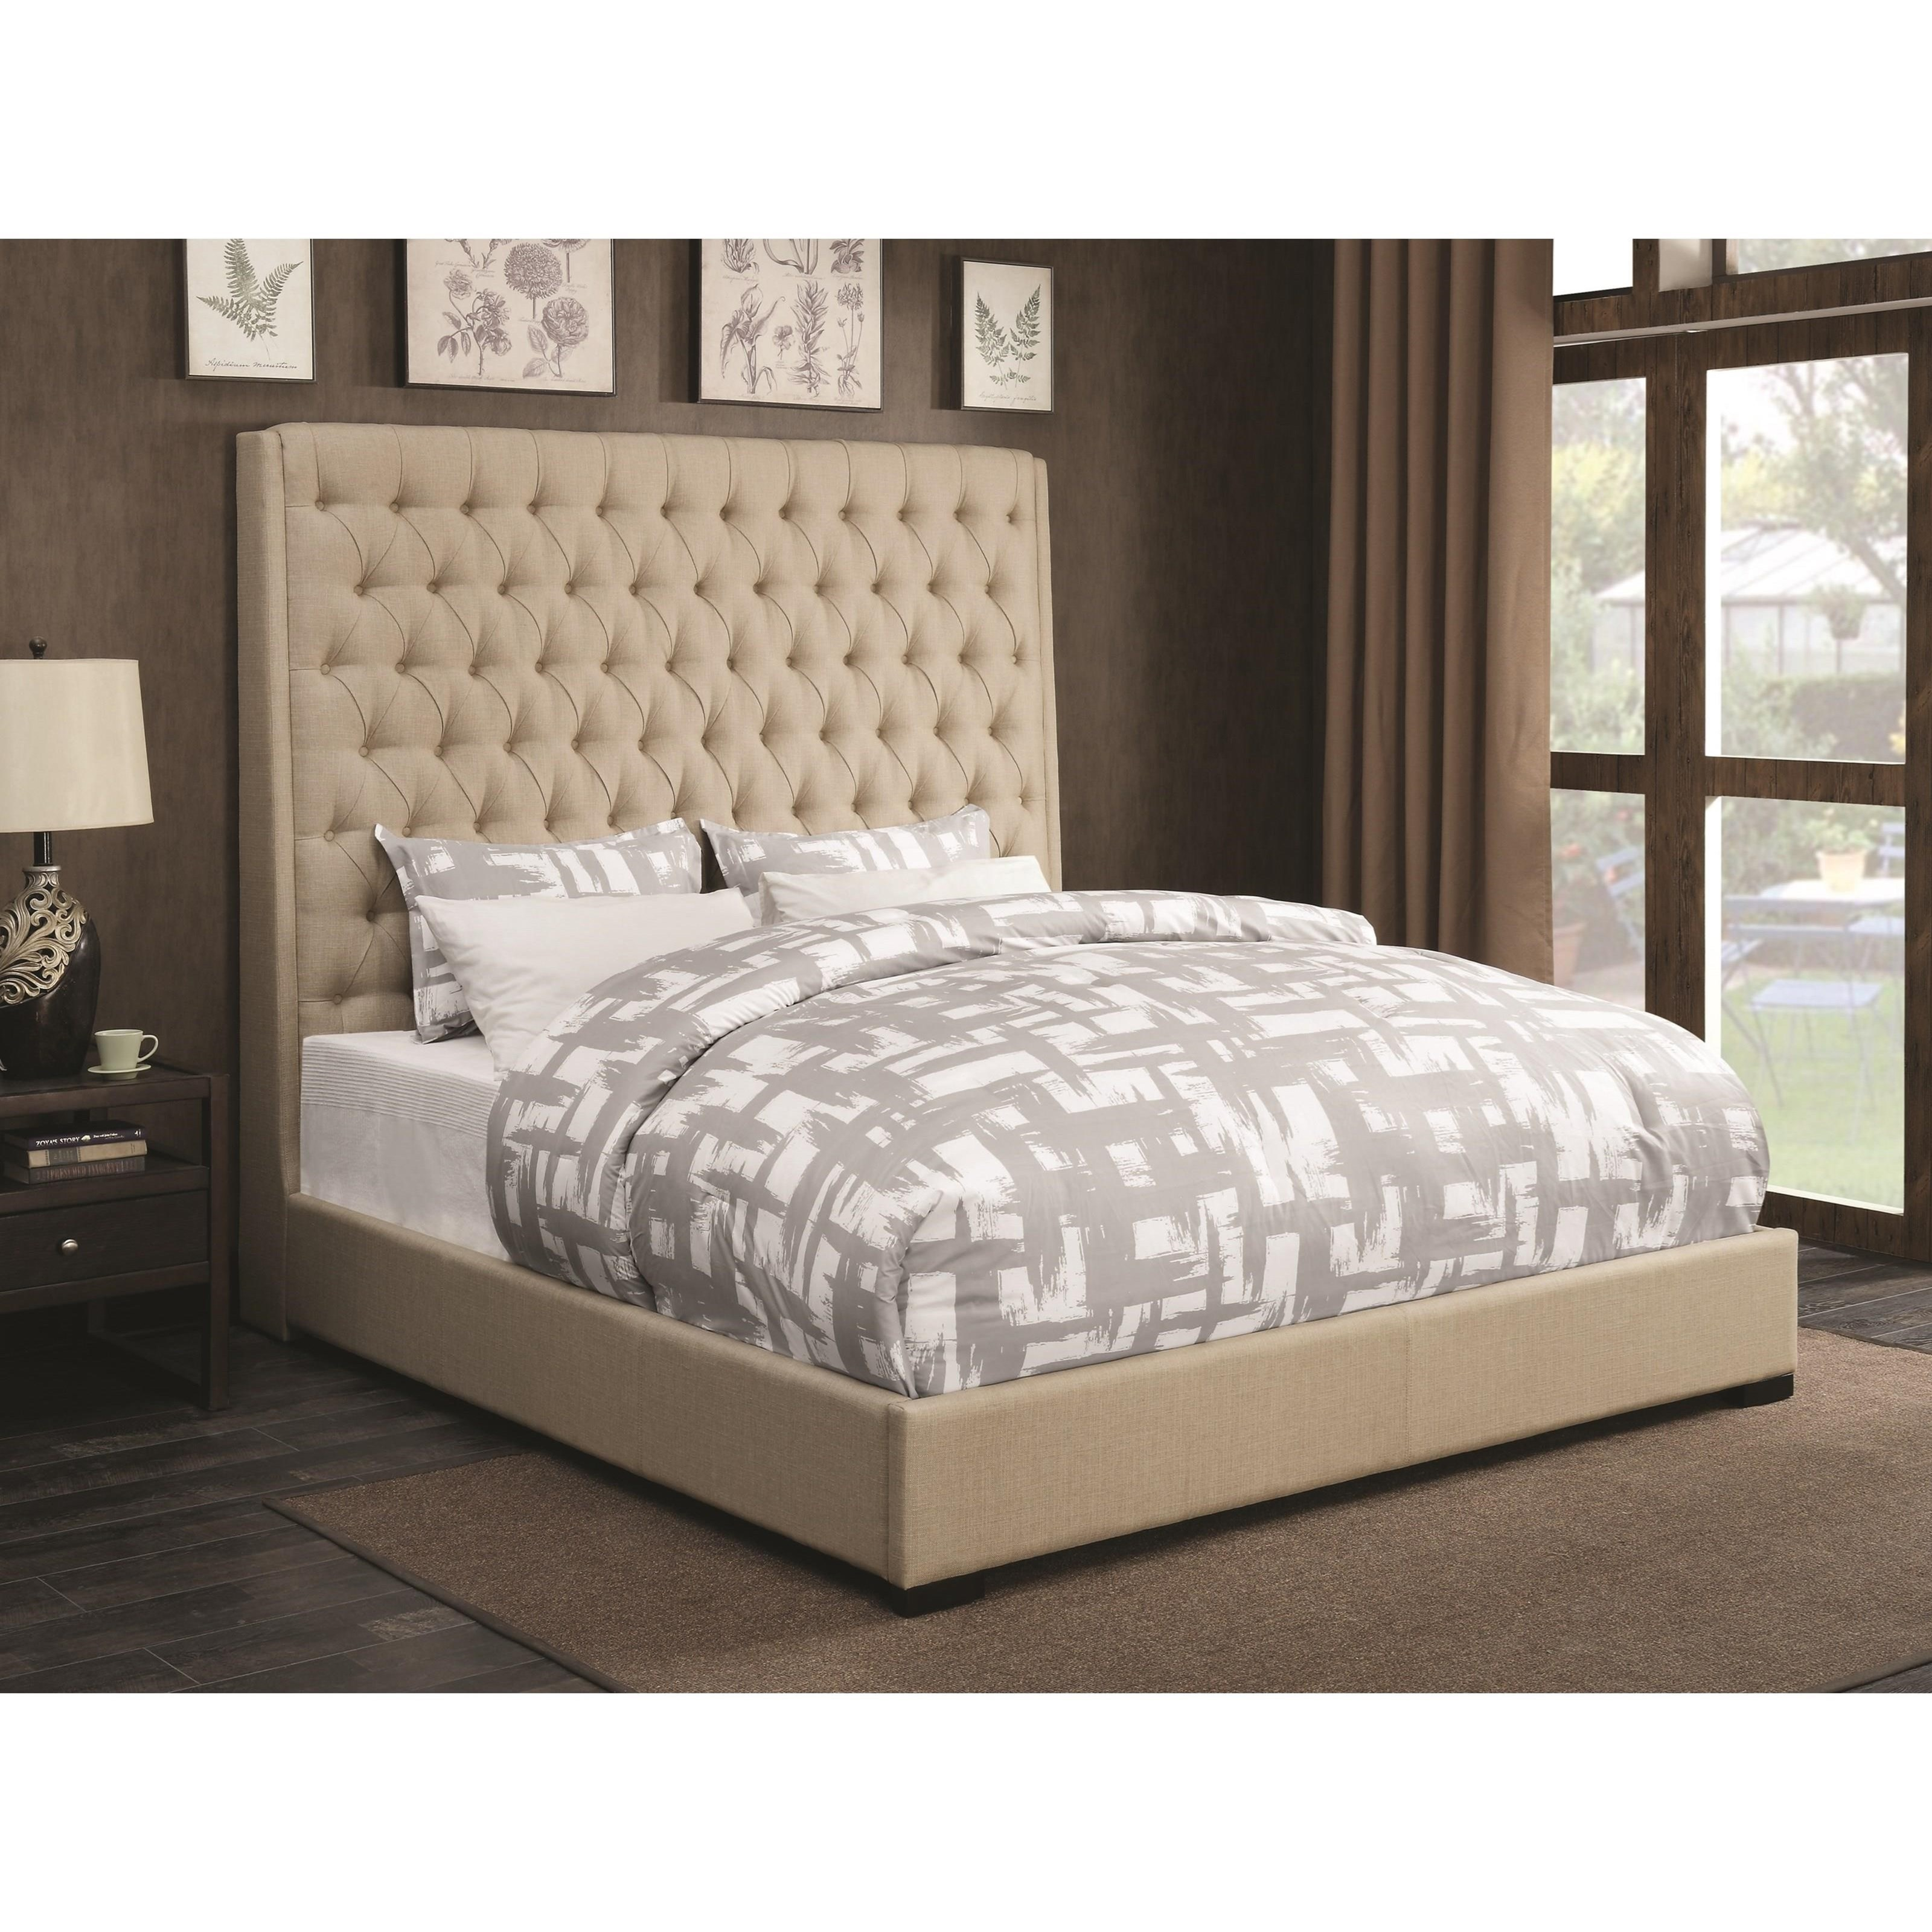 Coaster Upholstered Beds Ke Upholstered King Bed